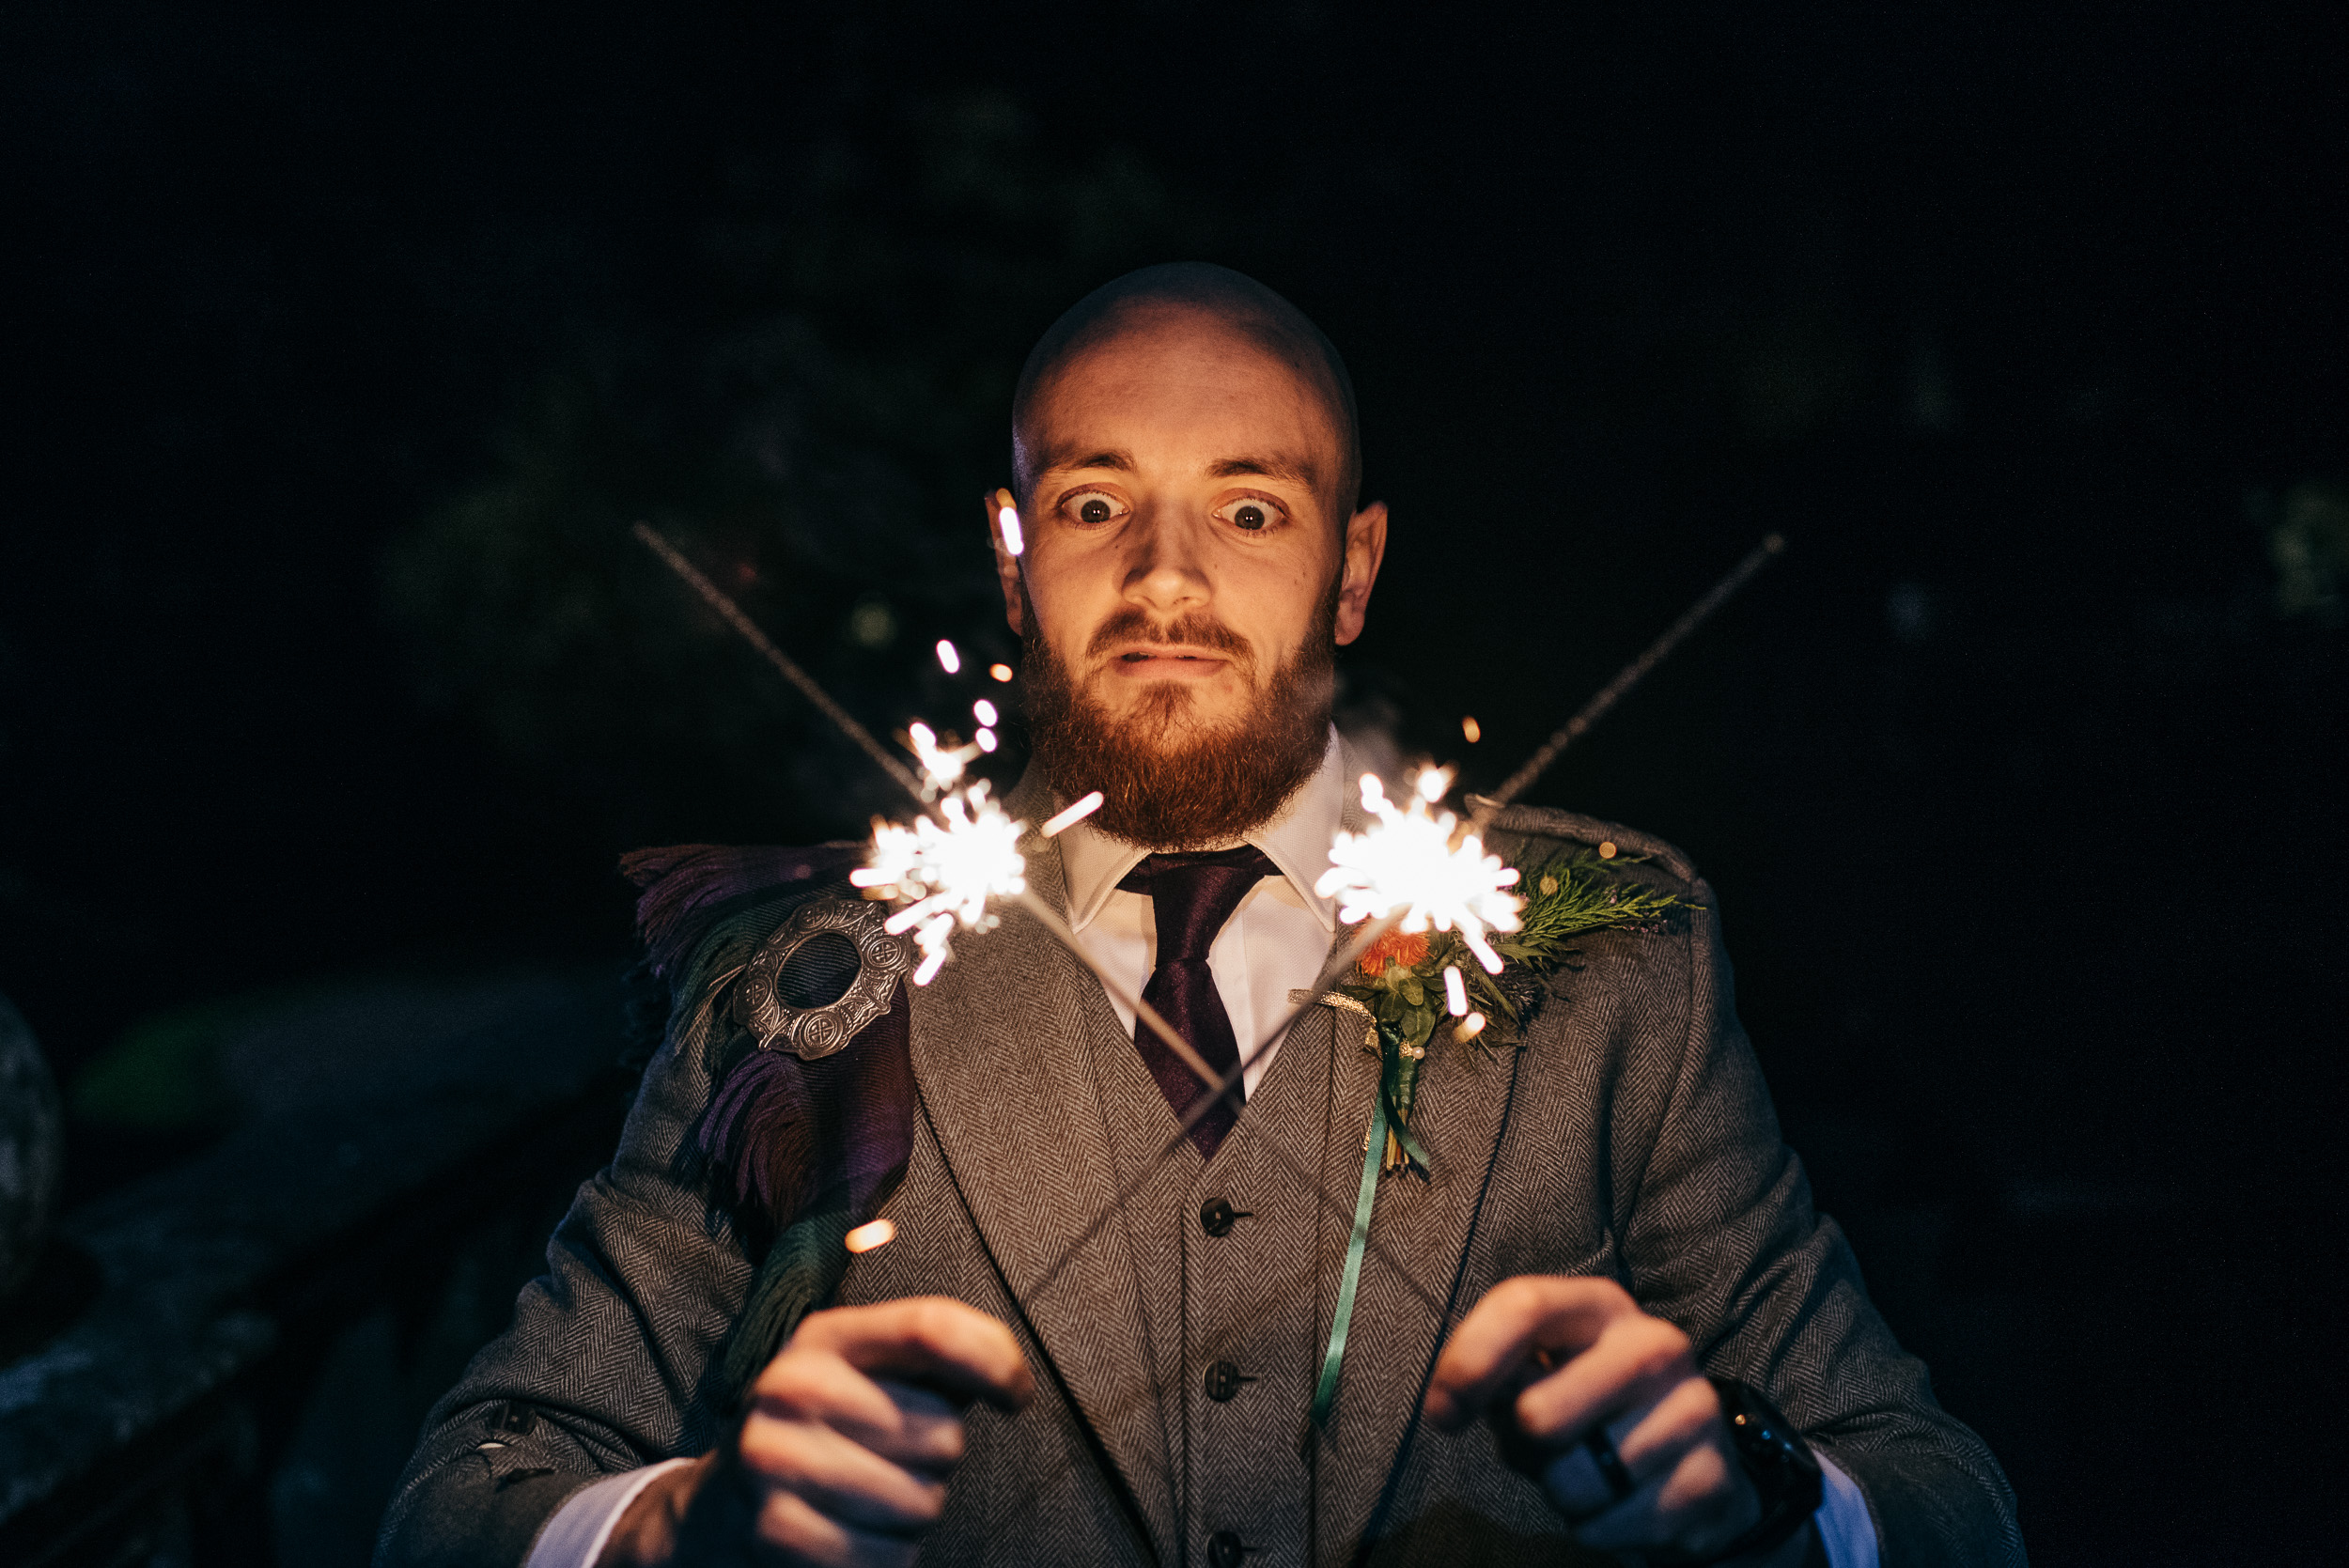 Wedding sparklers pictures